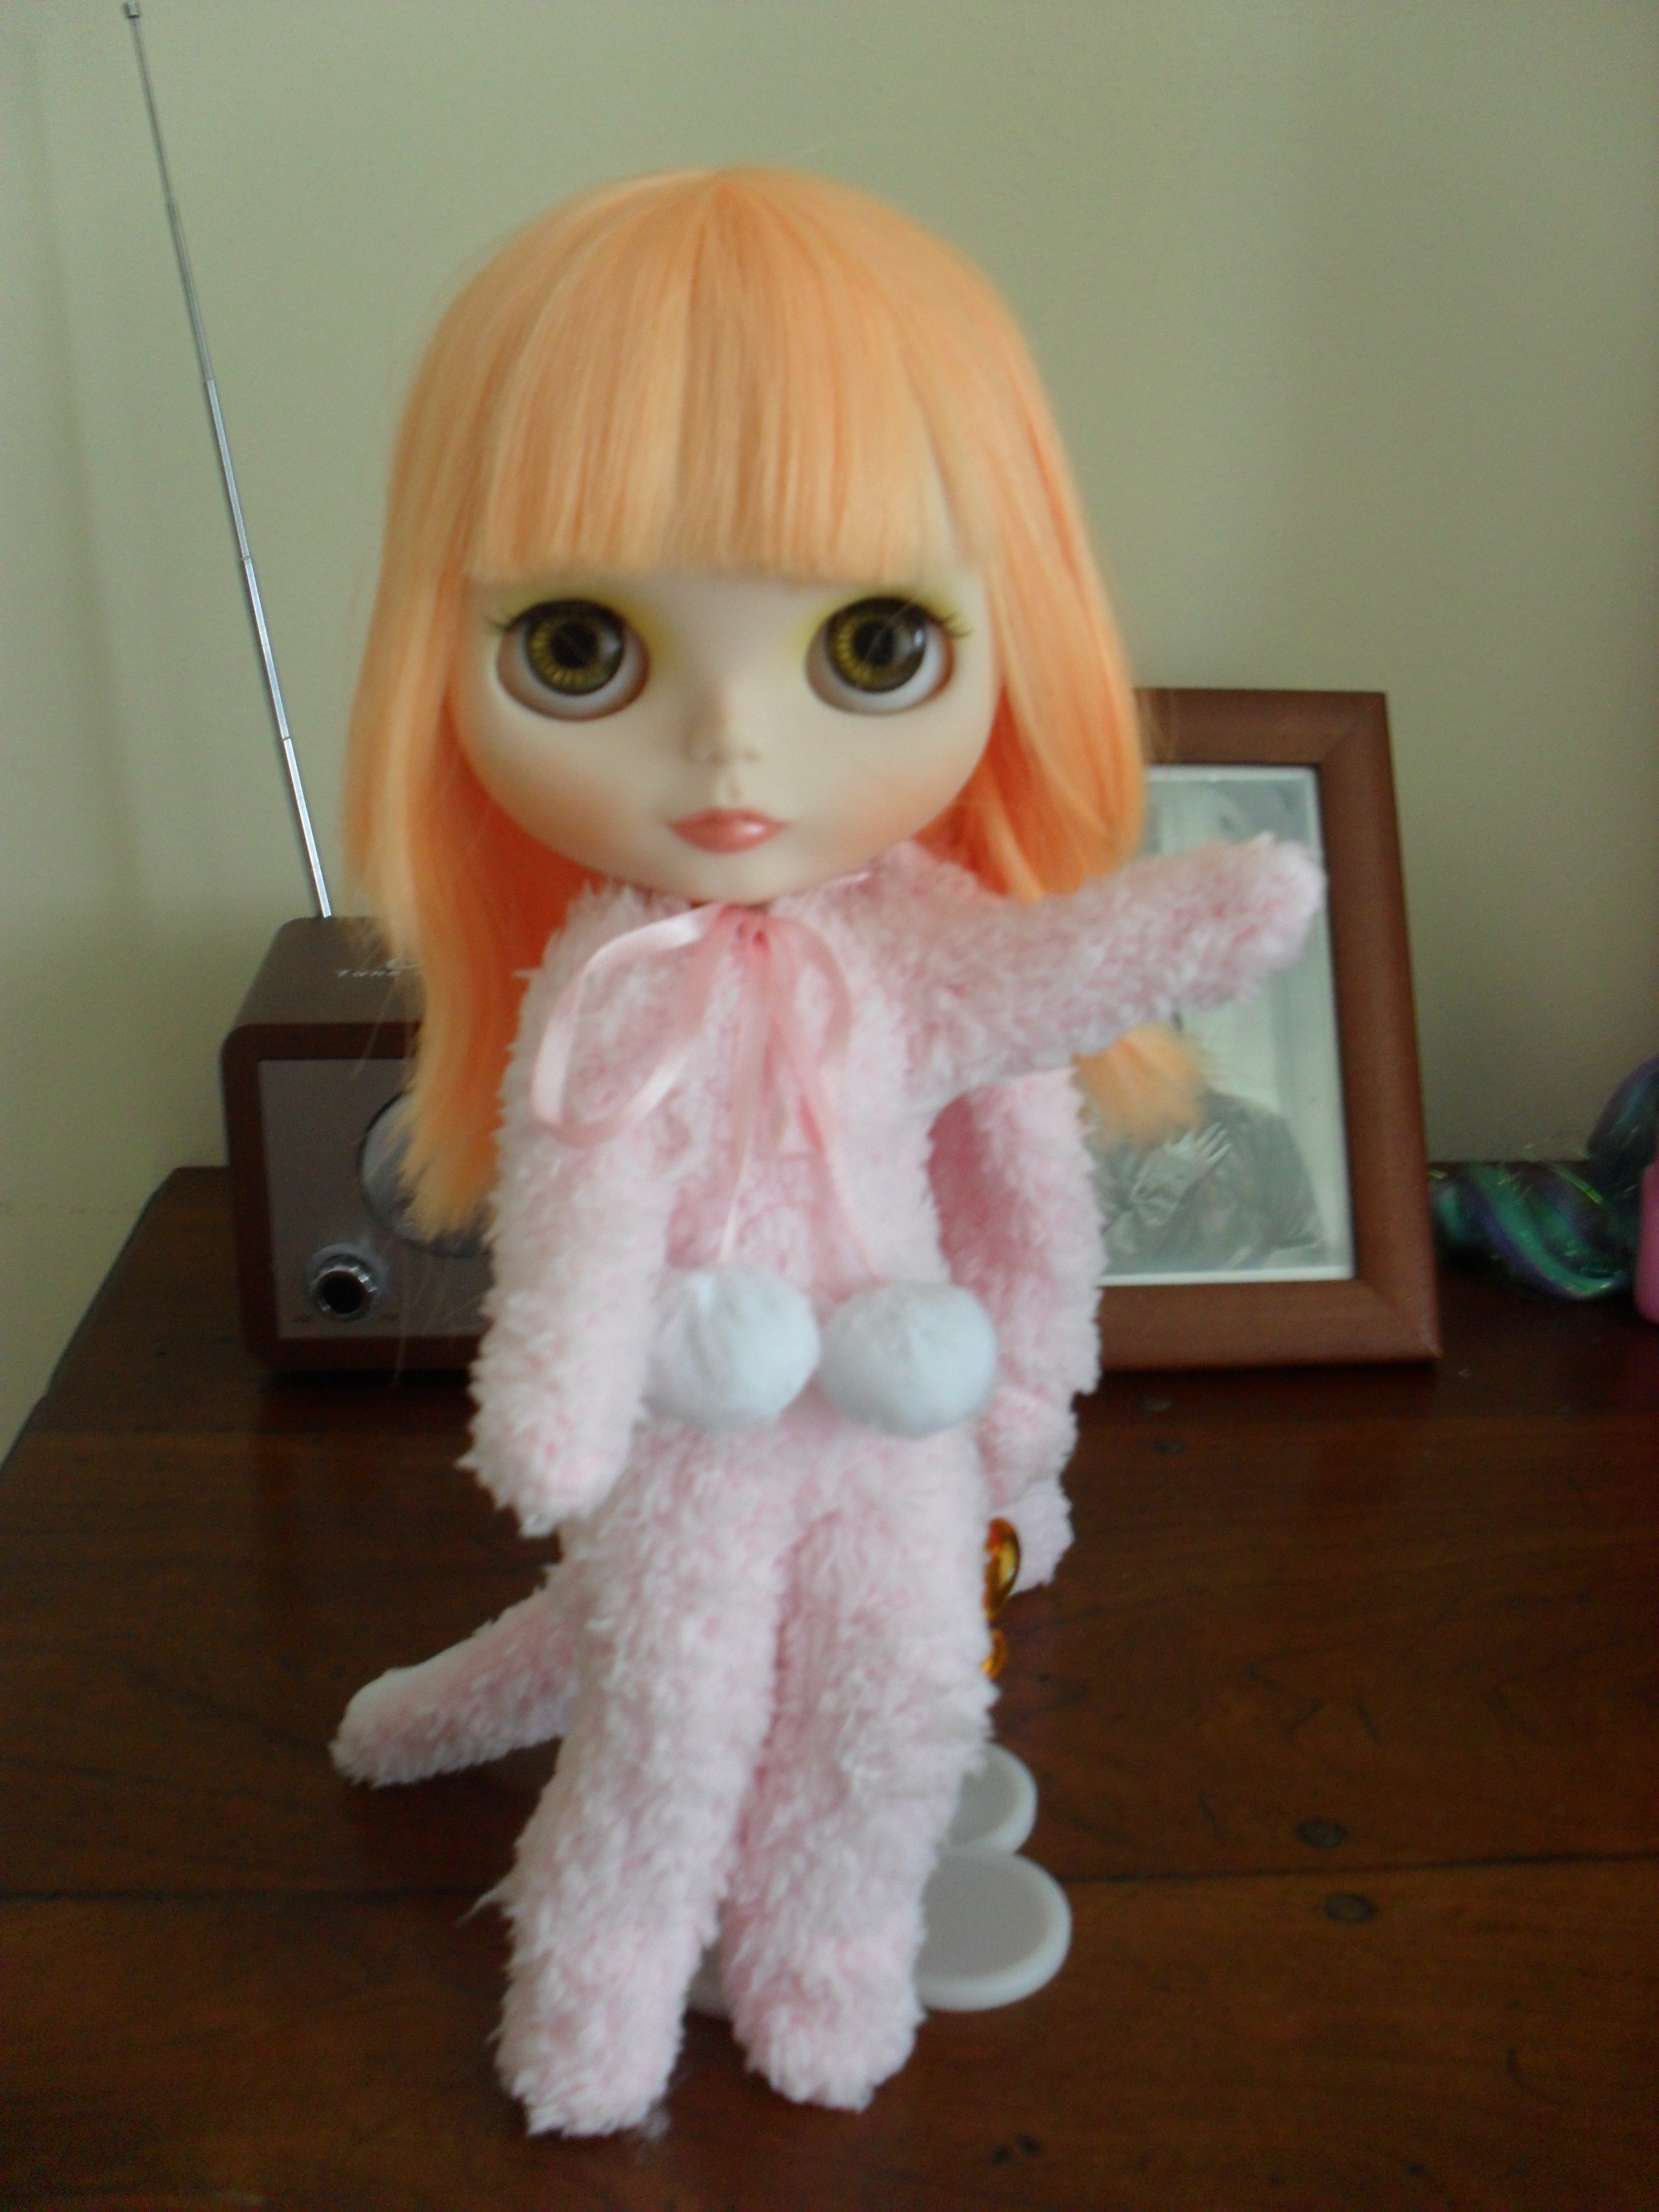 FOR SALE: Used (For display only) Nude Blythe Dolls